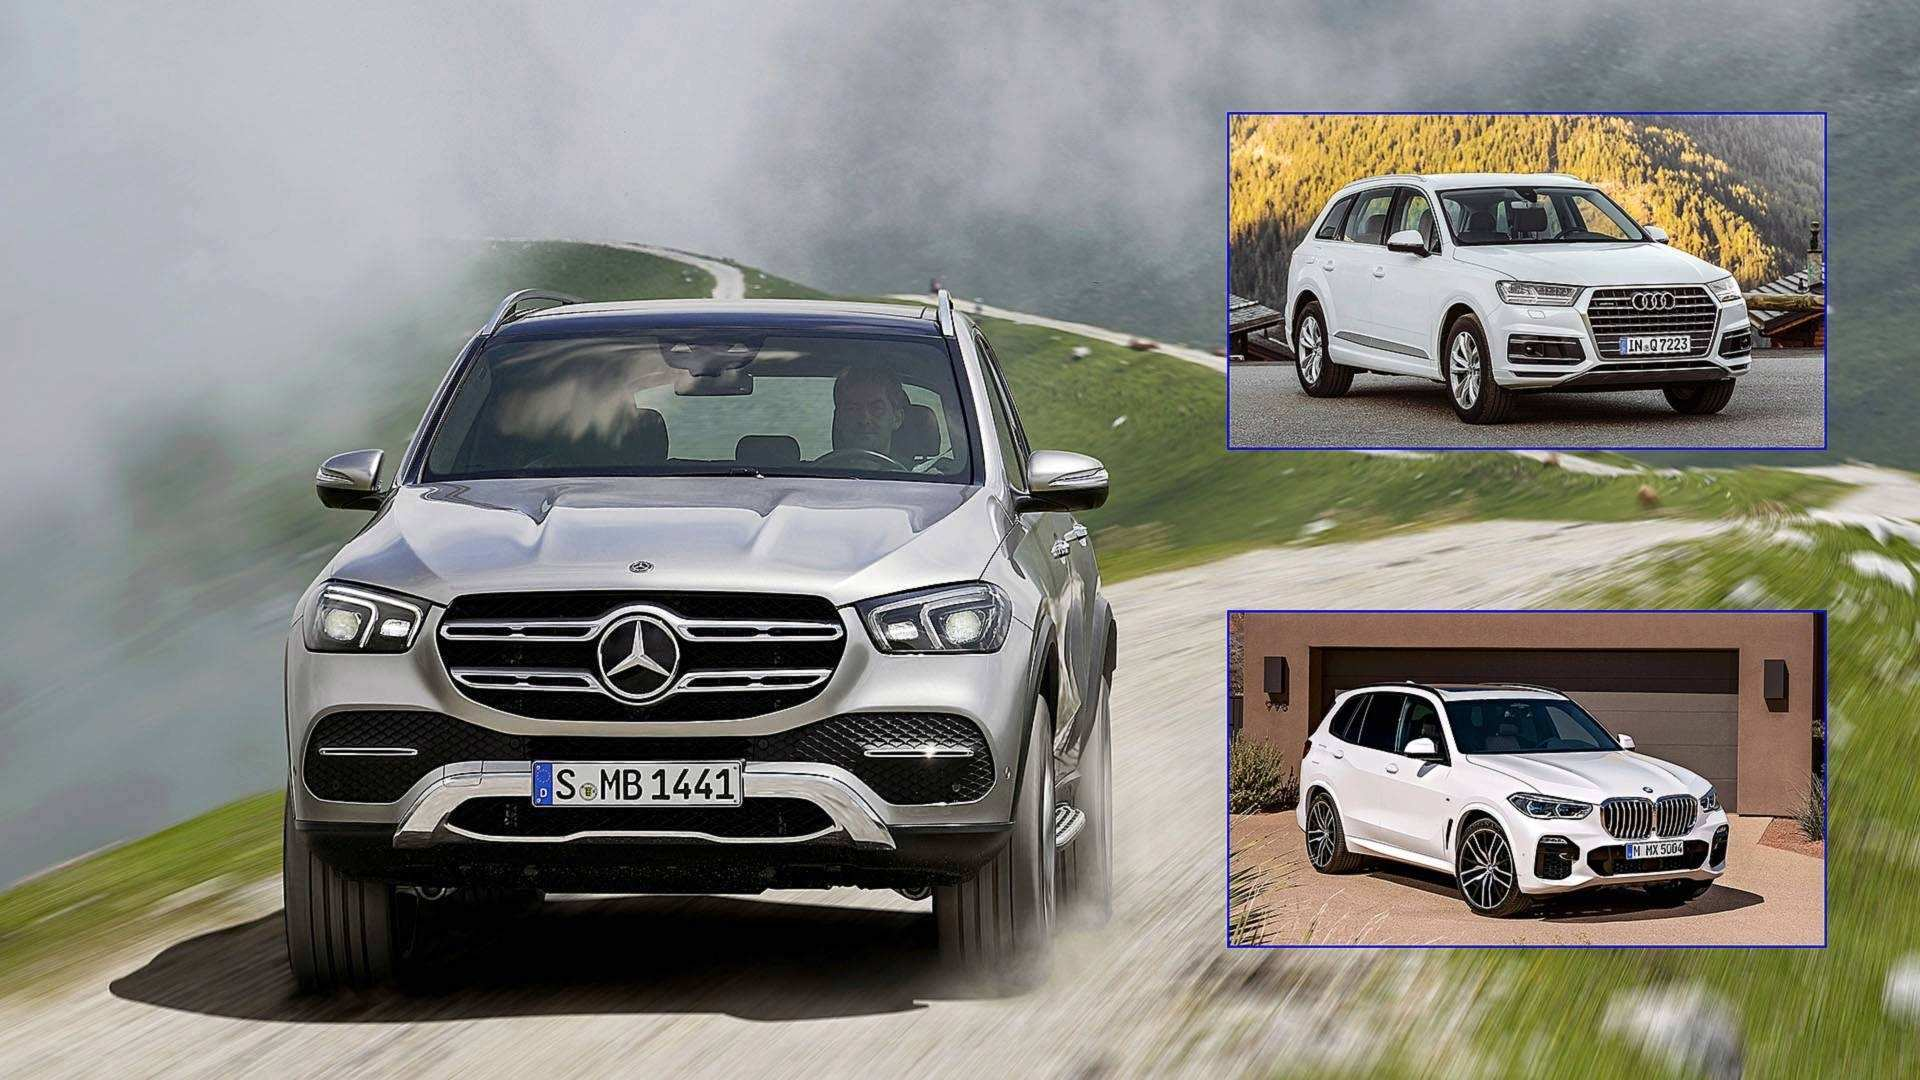 15 New 2019 Mercedes ML Class 400 Price And Review